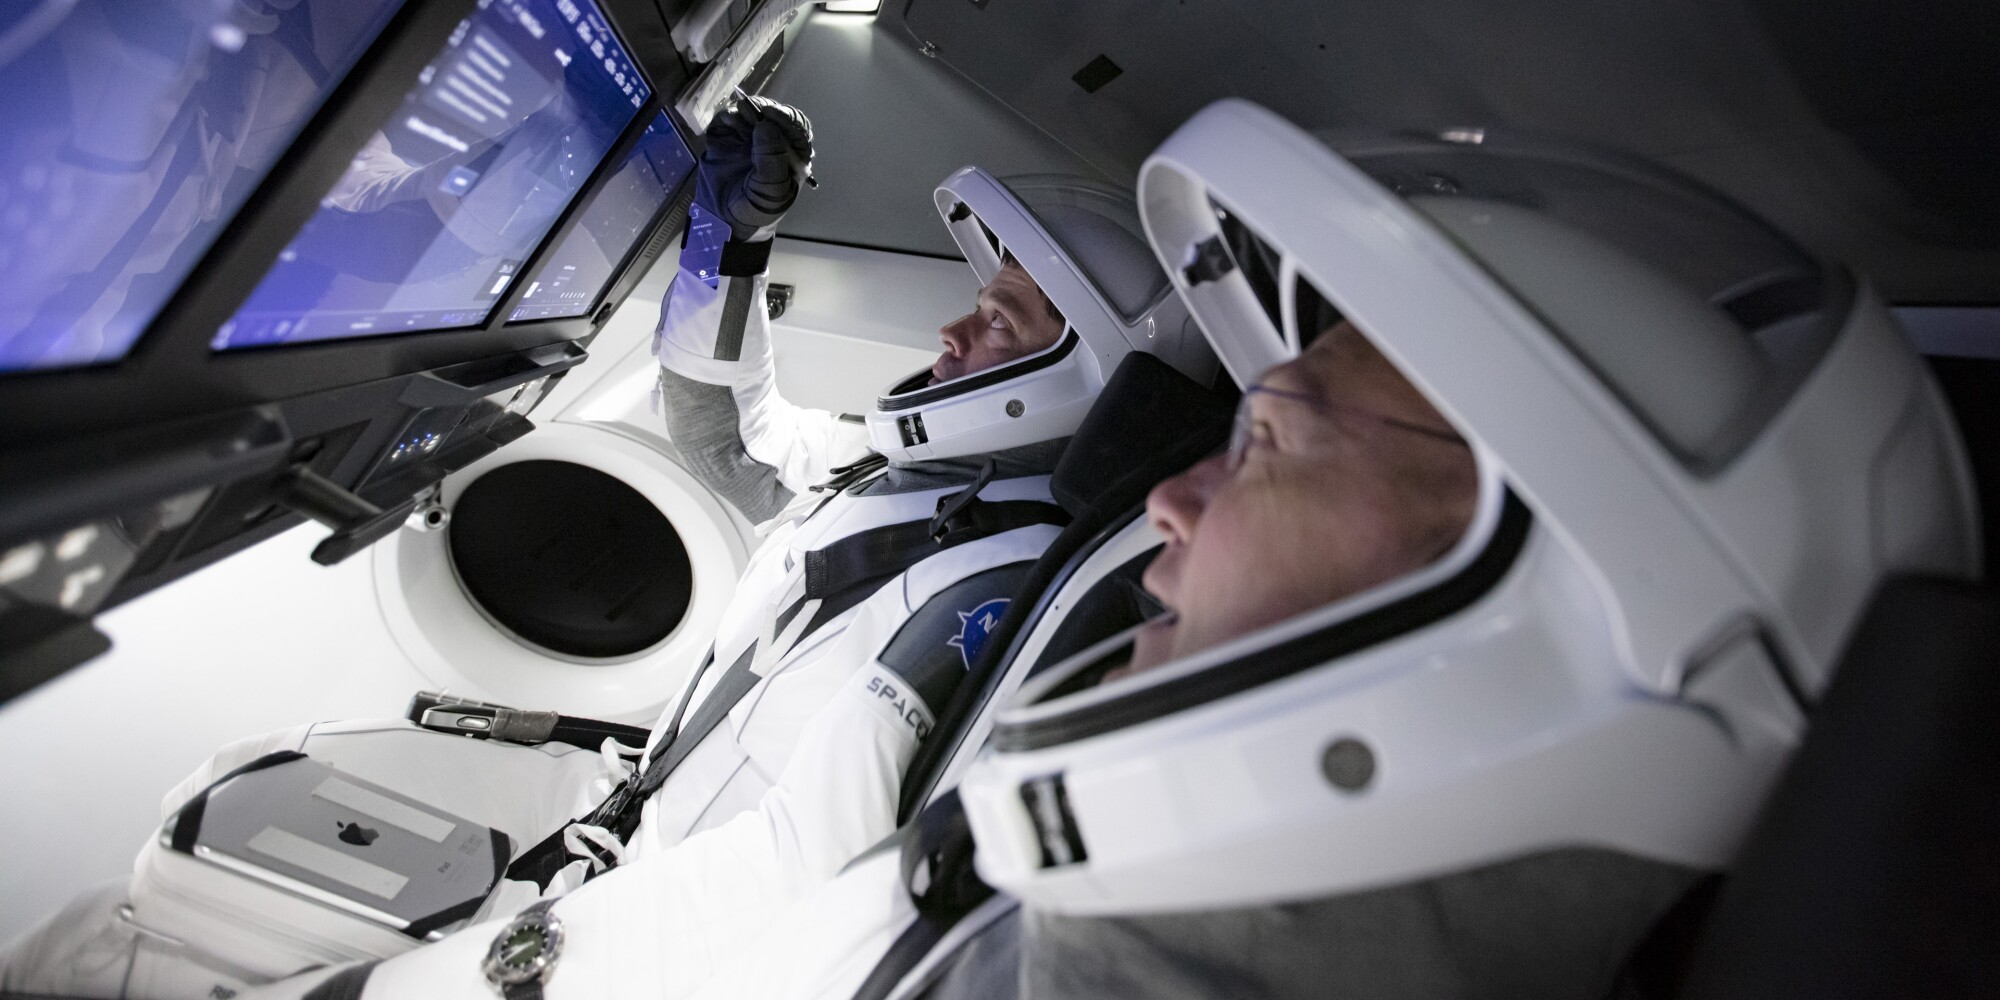 Astronauts Doug Hurley, foreground, and Bob Behnken work in SpaceX's flight simulator at the Kennedy Space Center in Cape Canaveral, Fla., in March.